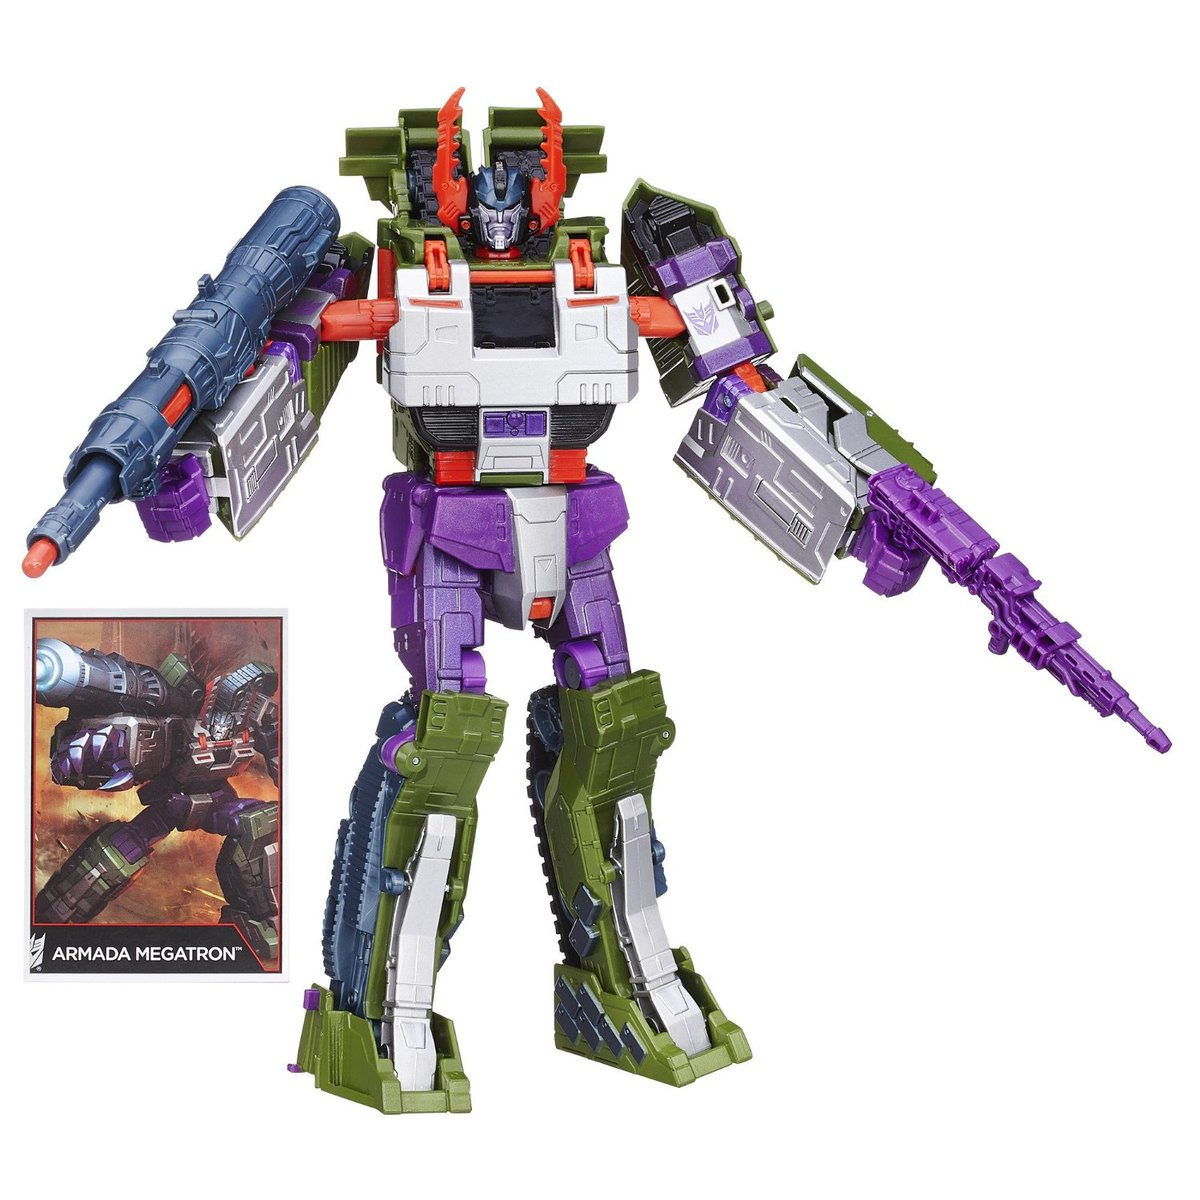 ... #Thundercracker $33.19 At #Amazon & More http://www.toyhypeusa.com/2015/10/25/transformers-generations-leader-class- thundercracker-33-19-at-amazon-more/ ...